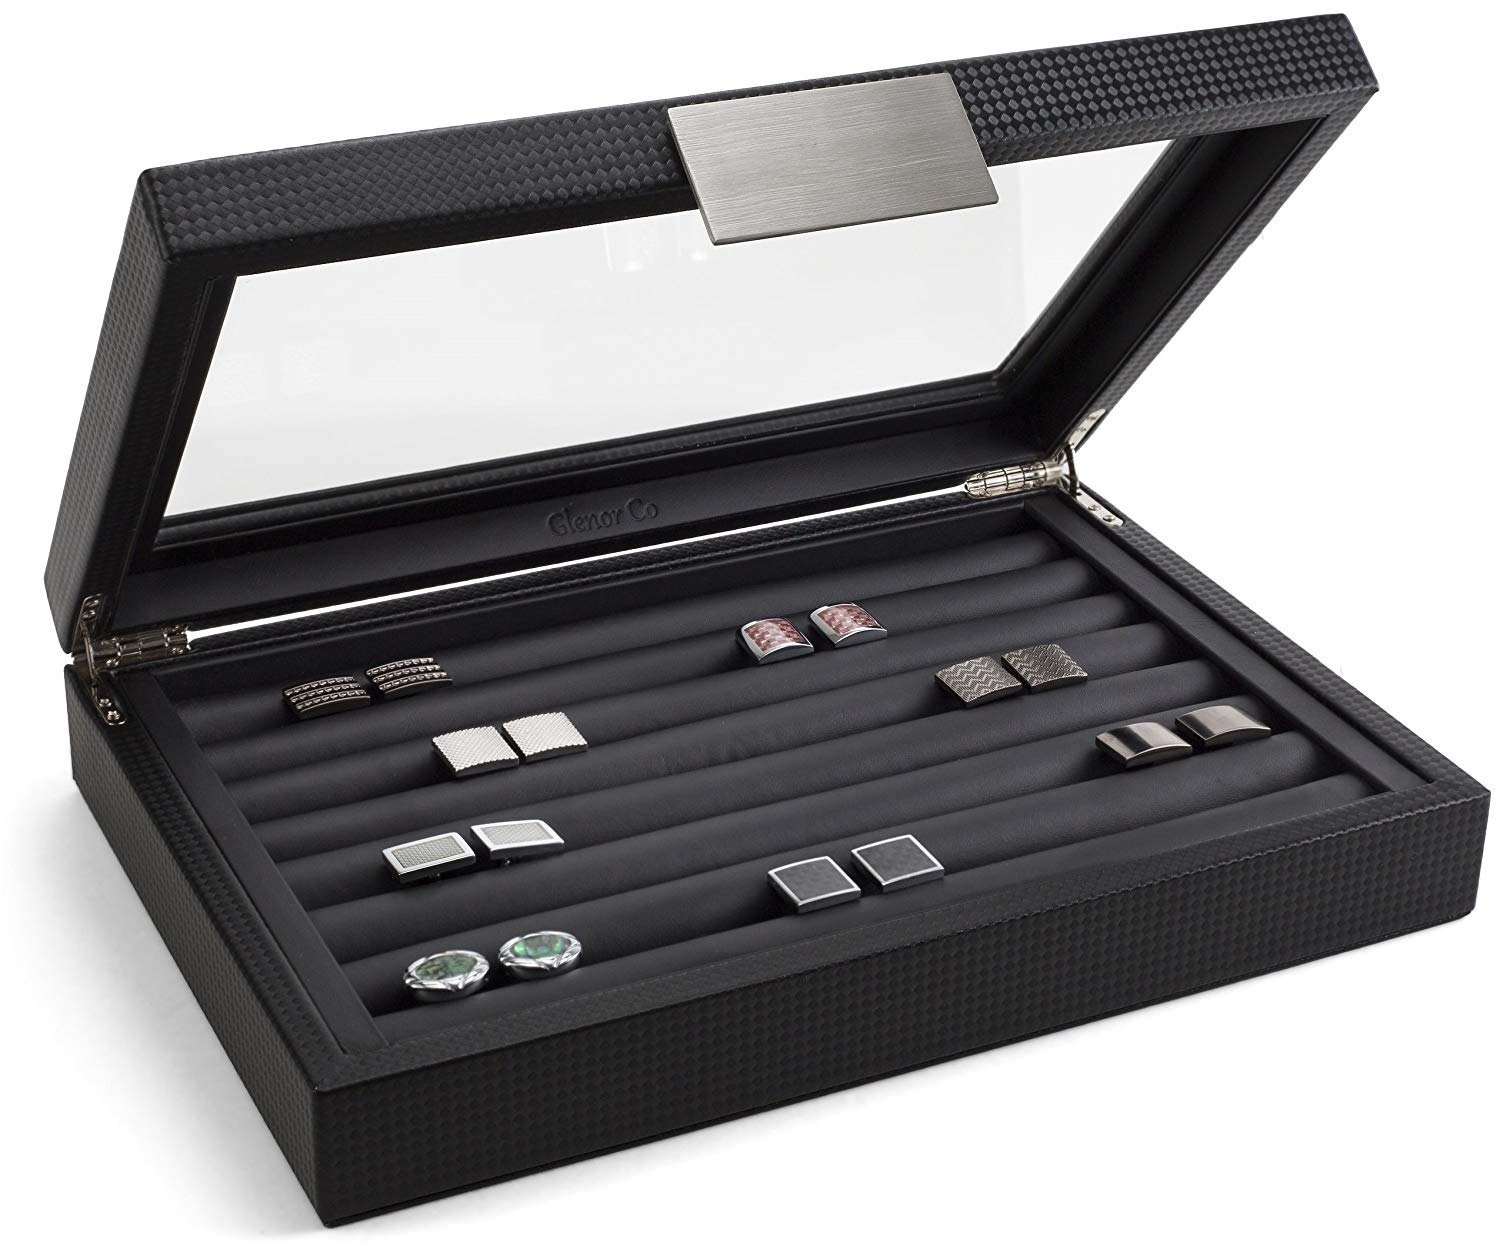 Glenor Co Cufflink Box for Men